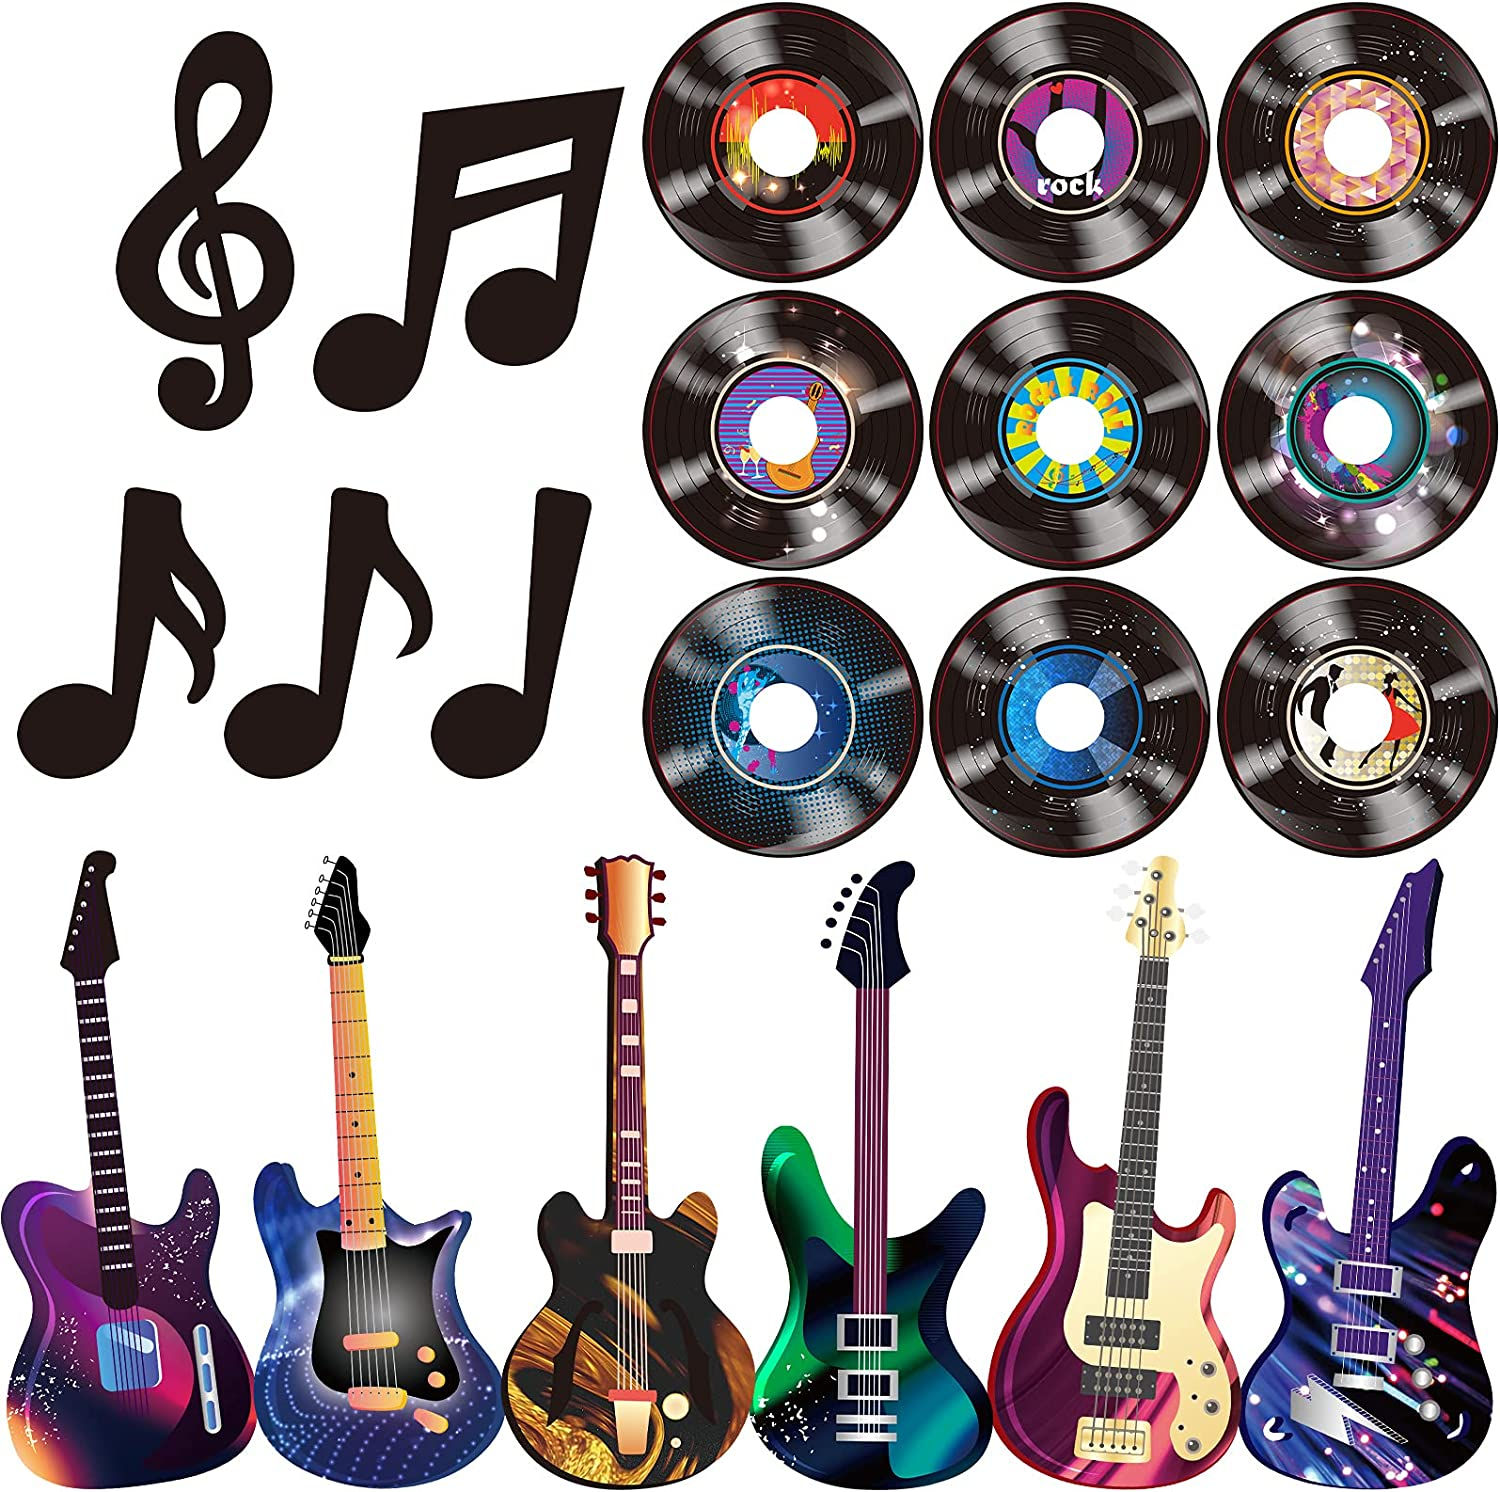 40 Pieces Music Party Decorations Musical Notes Silhouettes Record Cutouts Rock and Roll Record Cutouts Guitar Cutouts 50's Theme Party Baby Shower School Bulletin Board Craft Decor